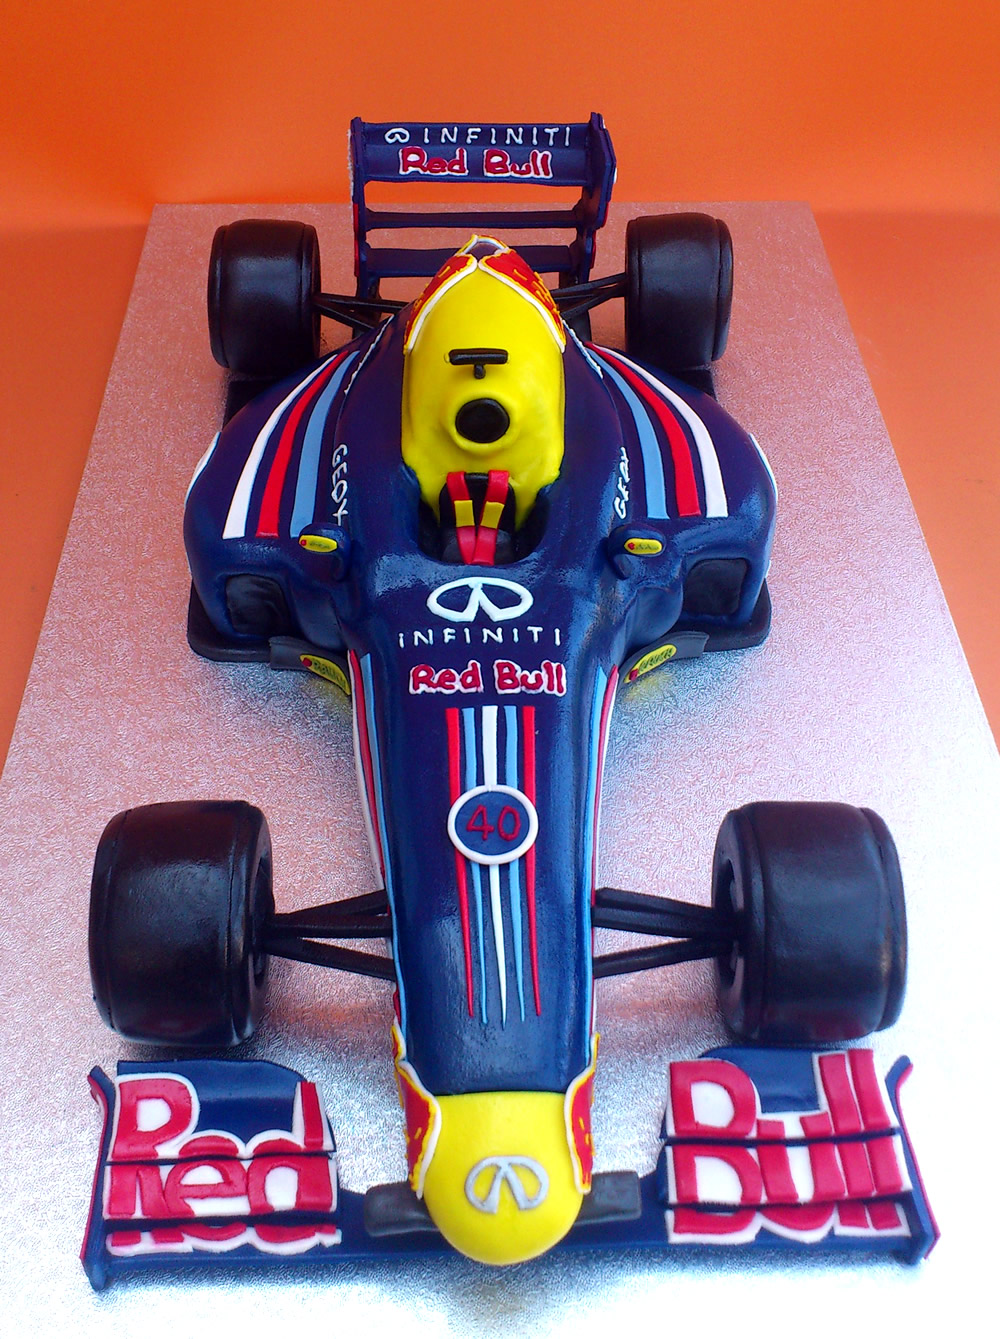 Red Bull F1 Racing Car Novelty Cake « Susies Cakes